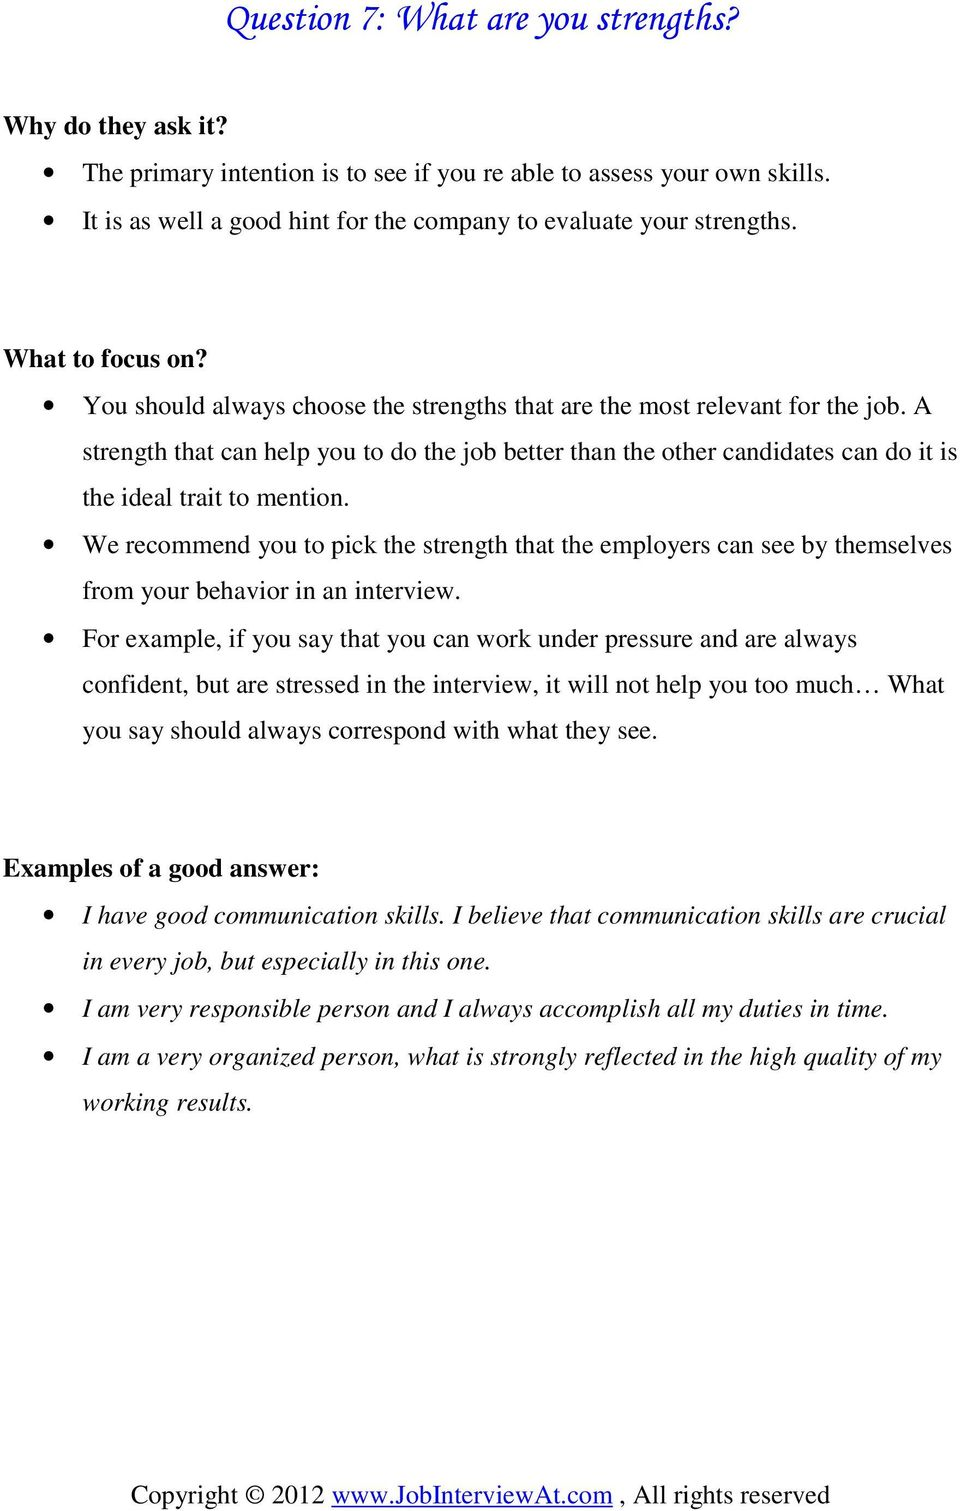 We recommend you to pick the strength that the employers can see by themselves from your behavior in an interview.